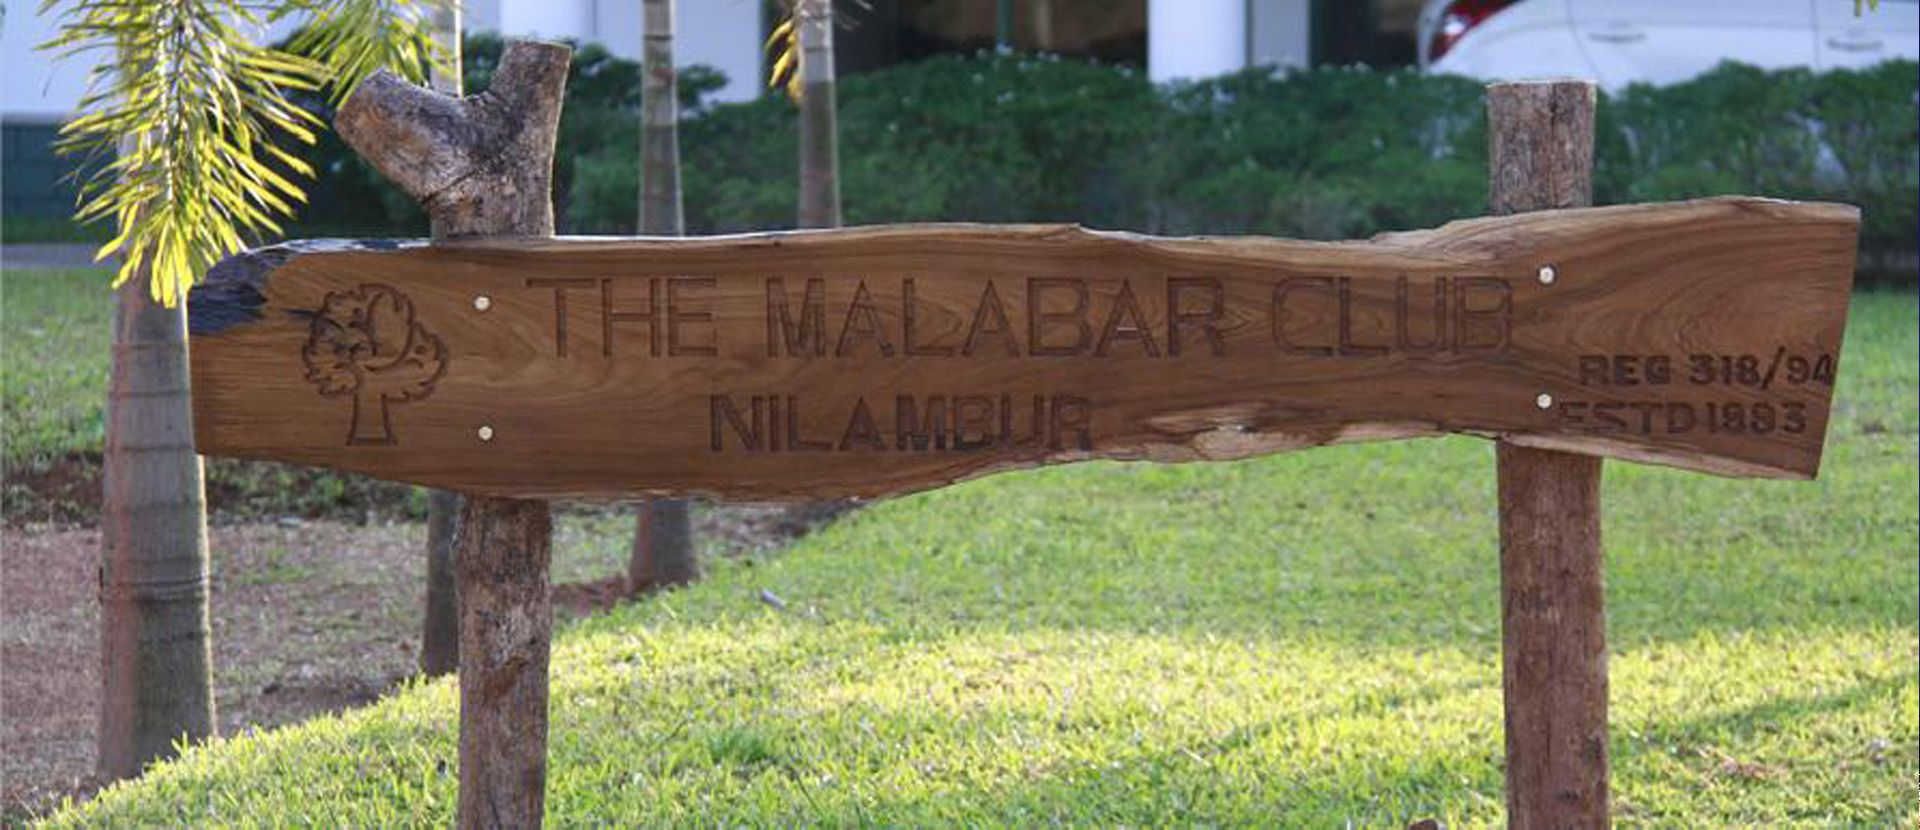 Welcome to The Malabar Club